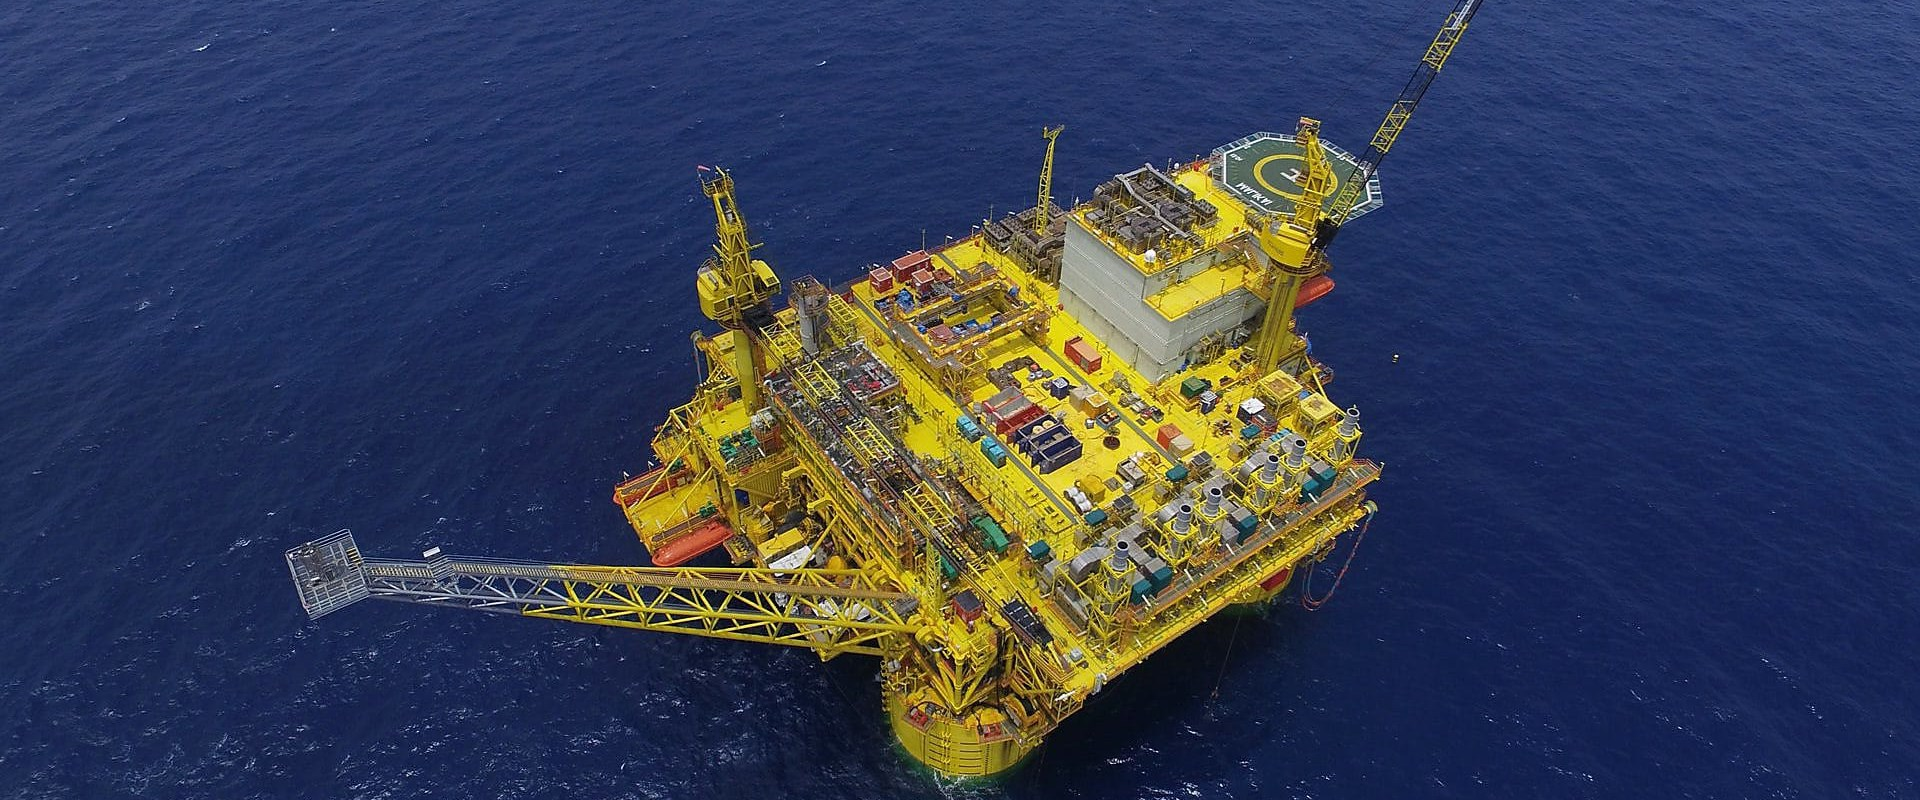 BMT offshore Malaysia - banner